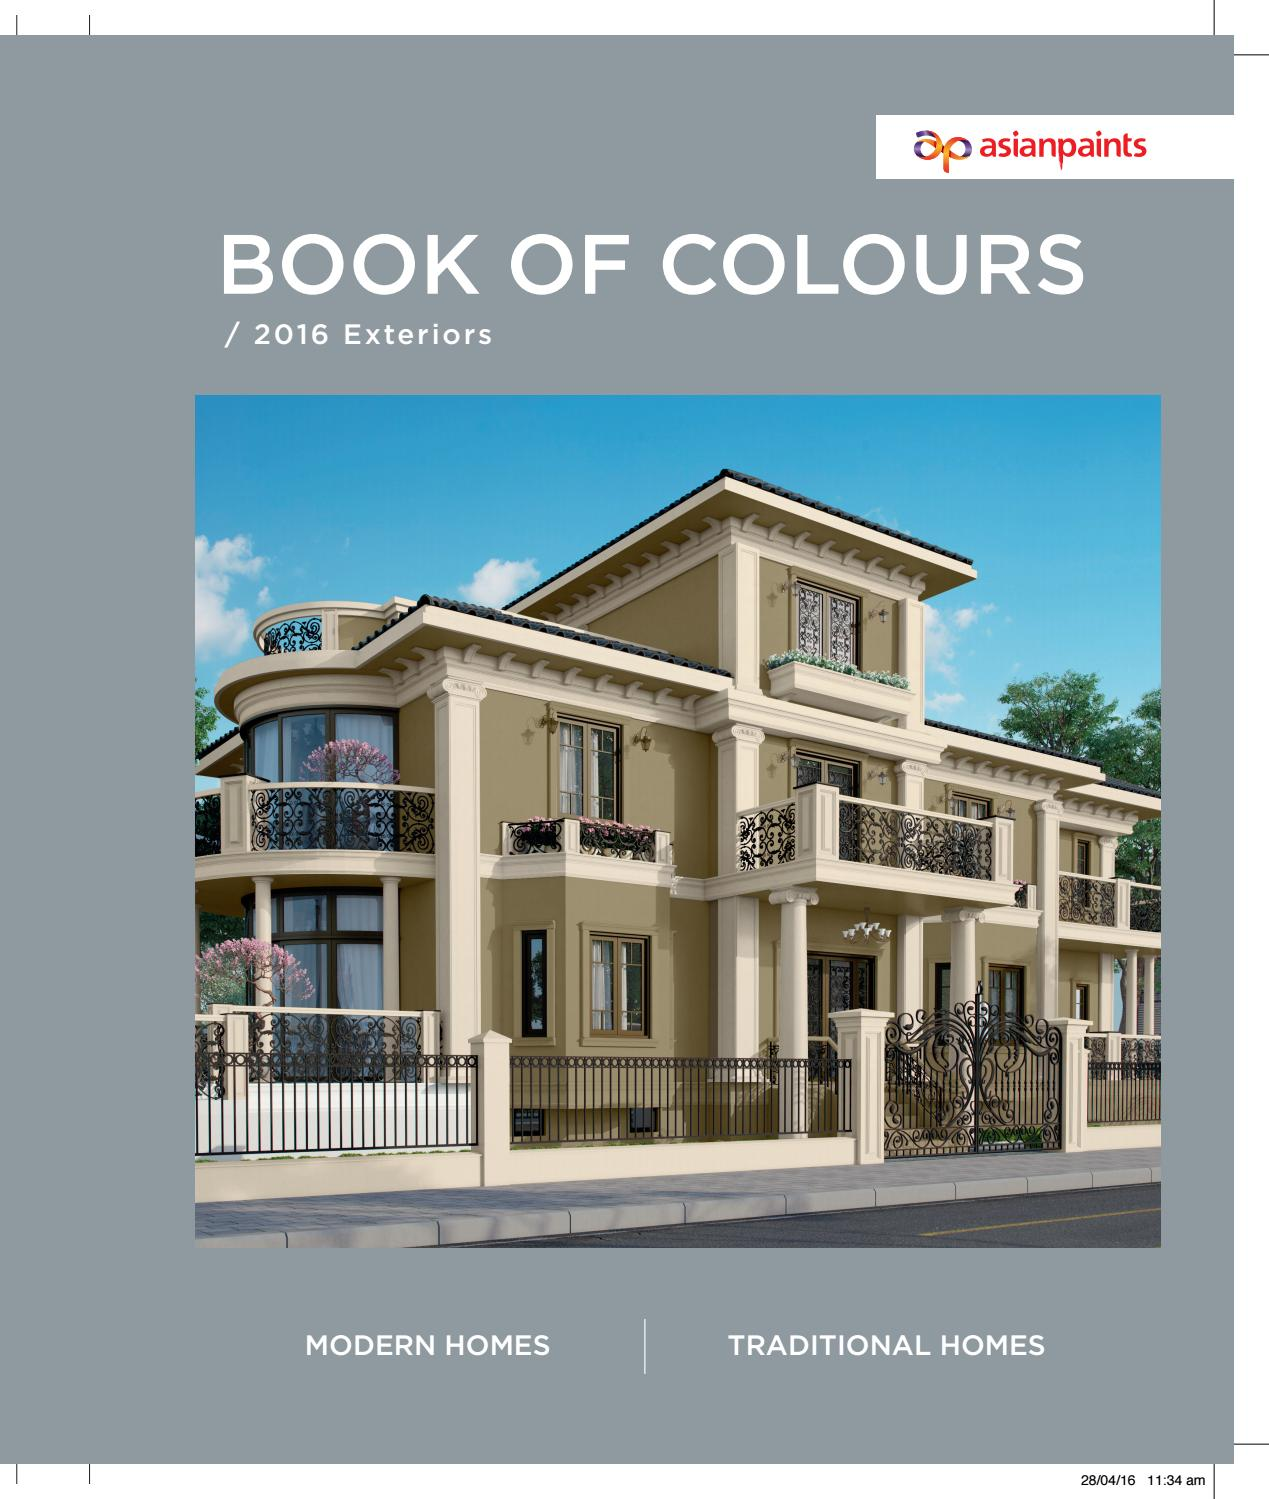 Bookofcolours by asian paints limited issuu - Asian paints color shades for exterior ...